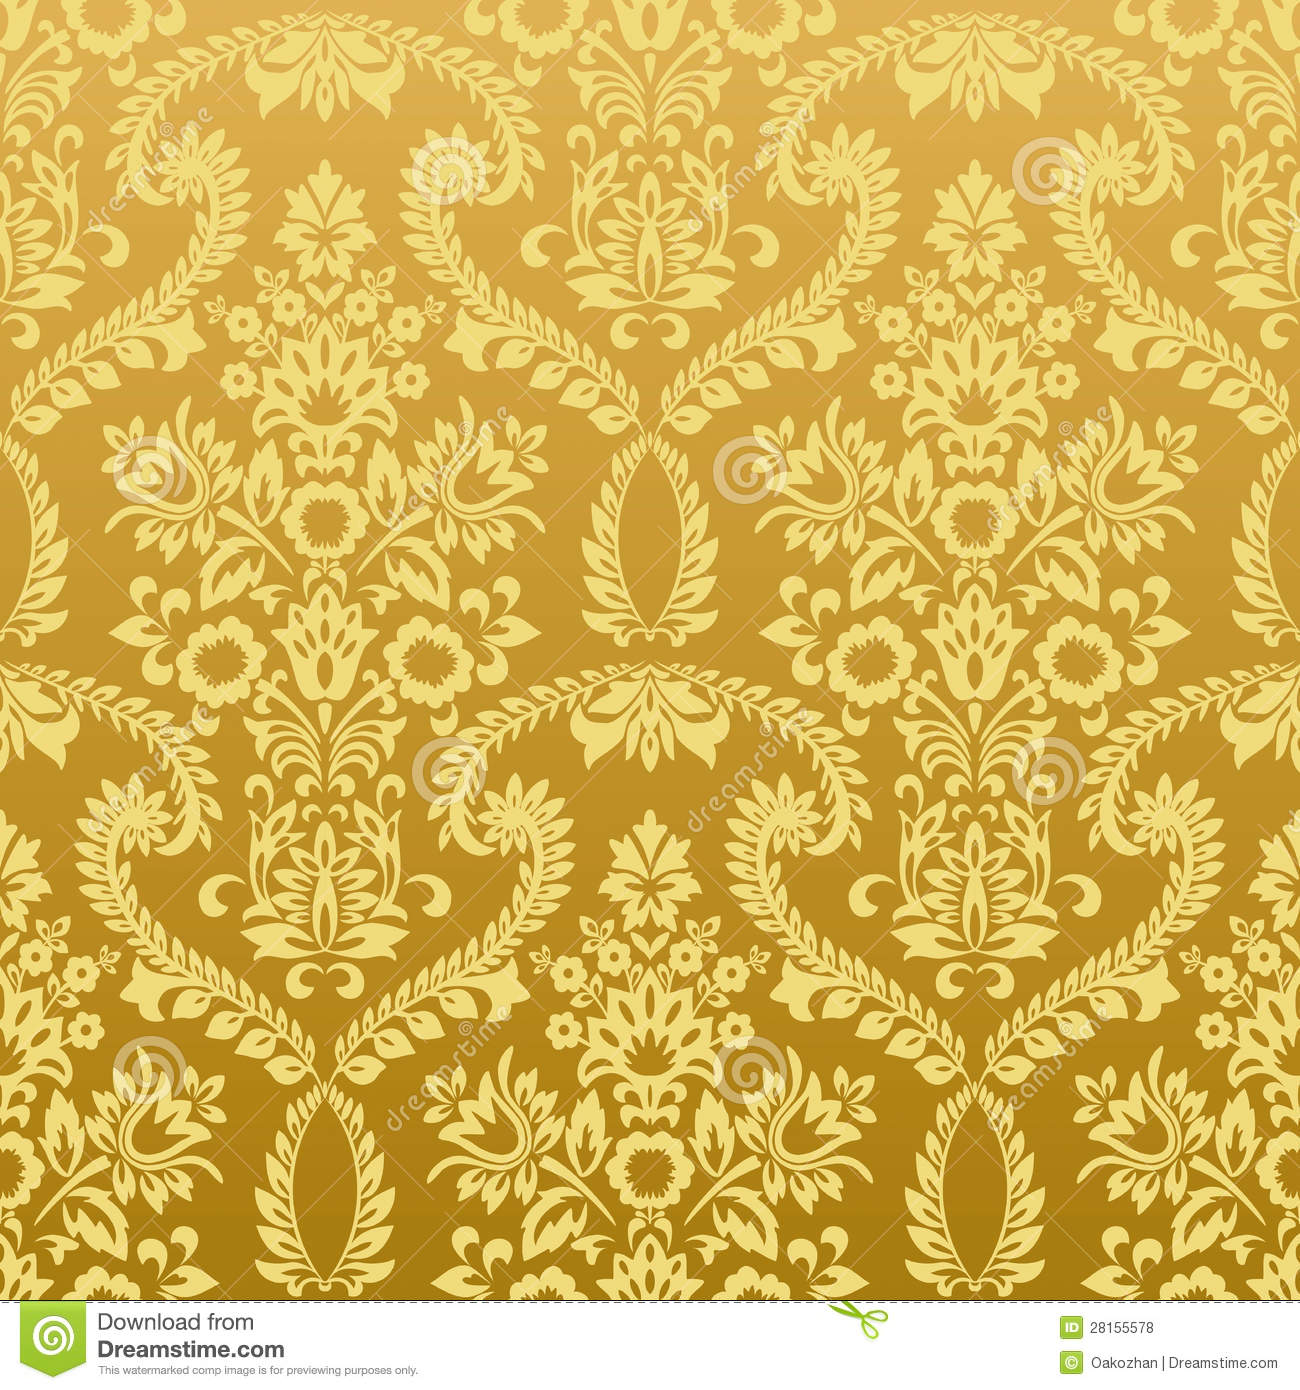 Seamless Floral Vintage Gold Wallpaper Royalty Free Stock